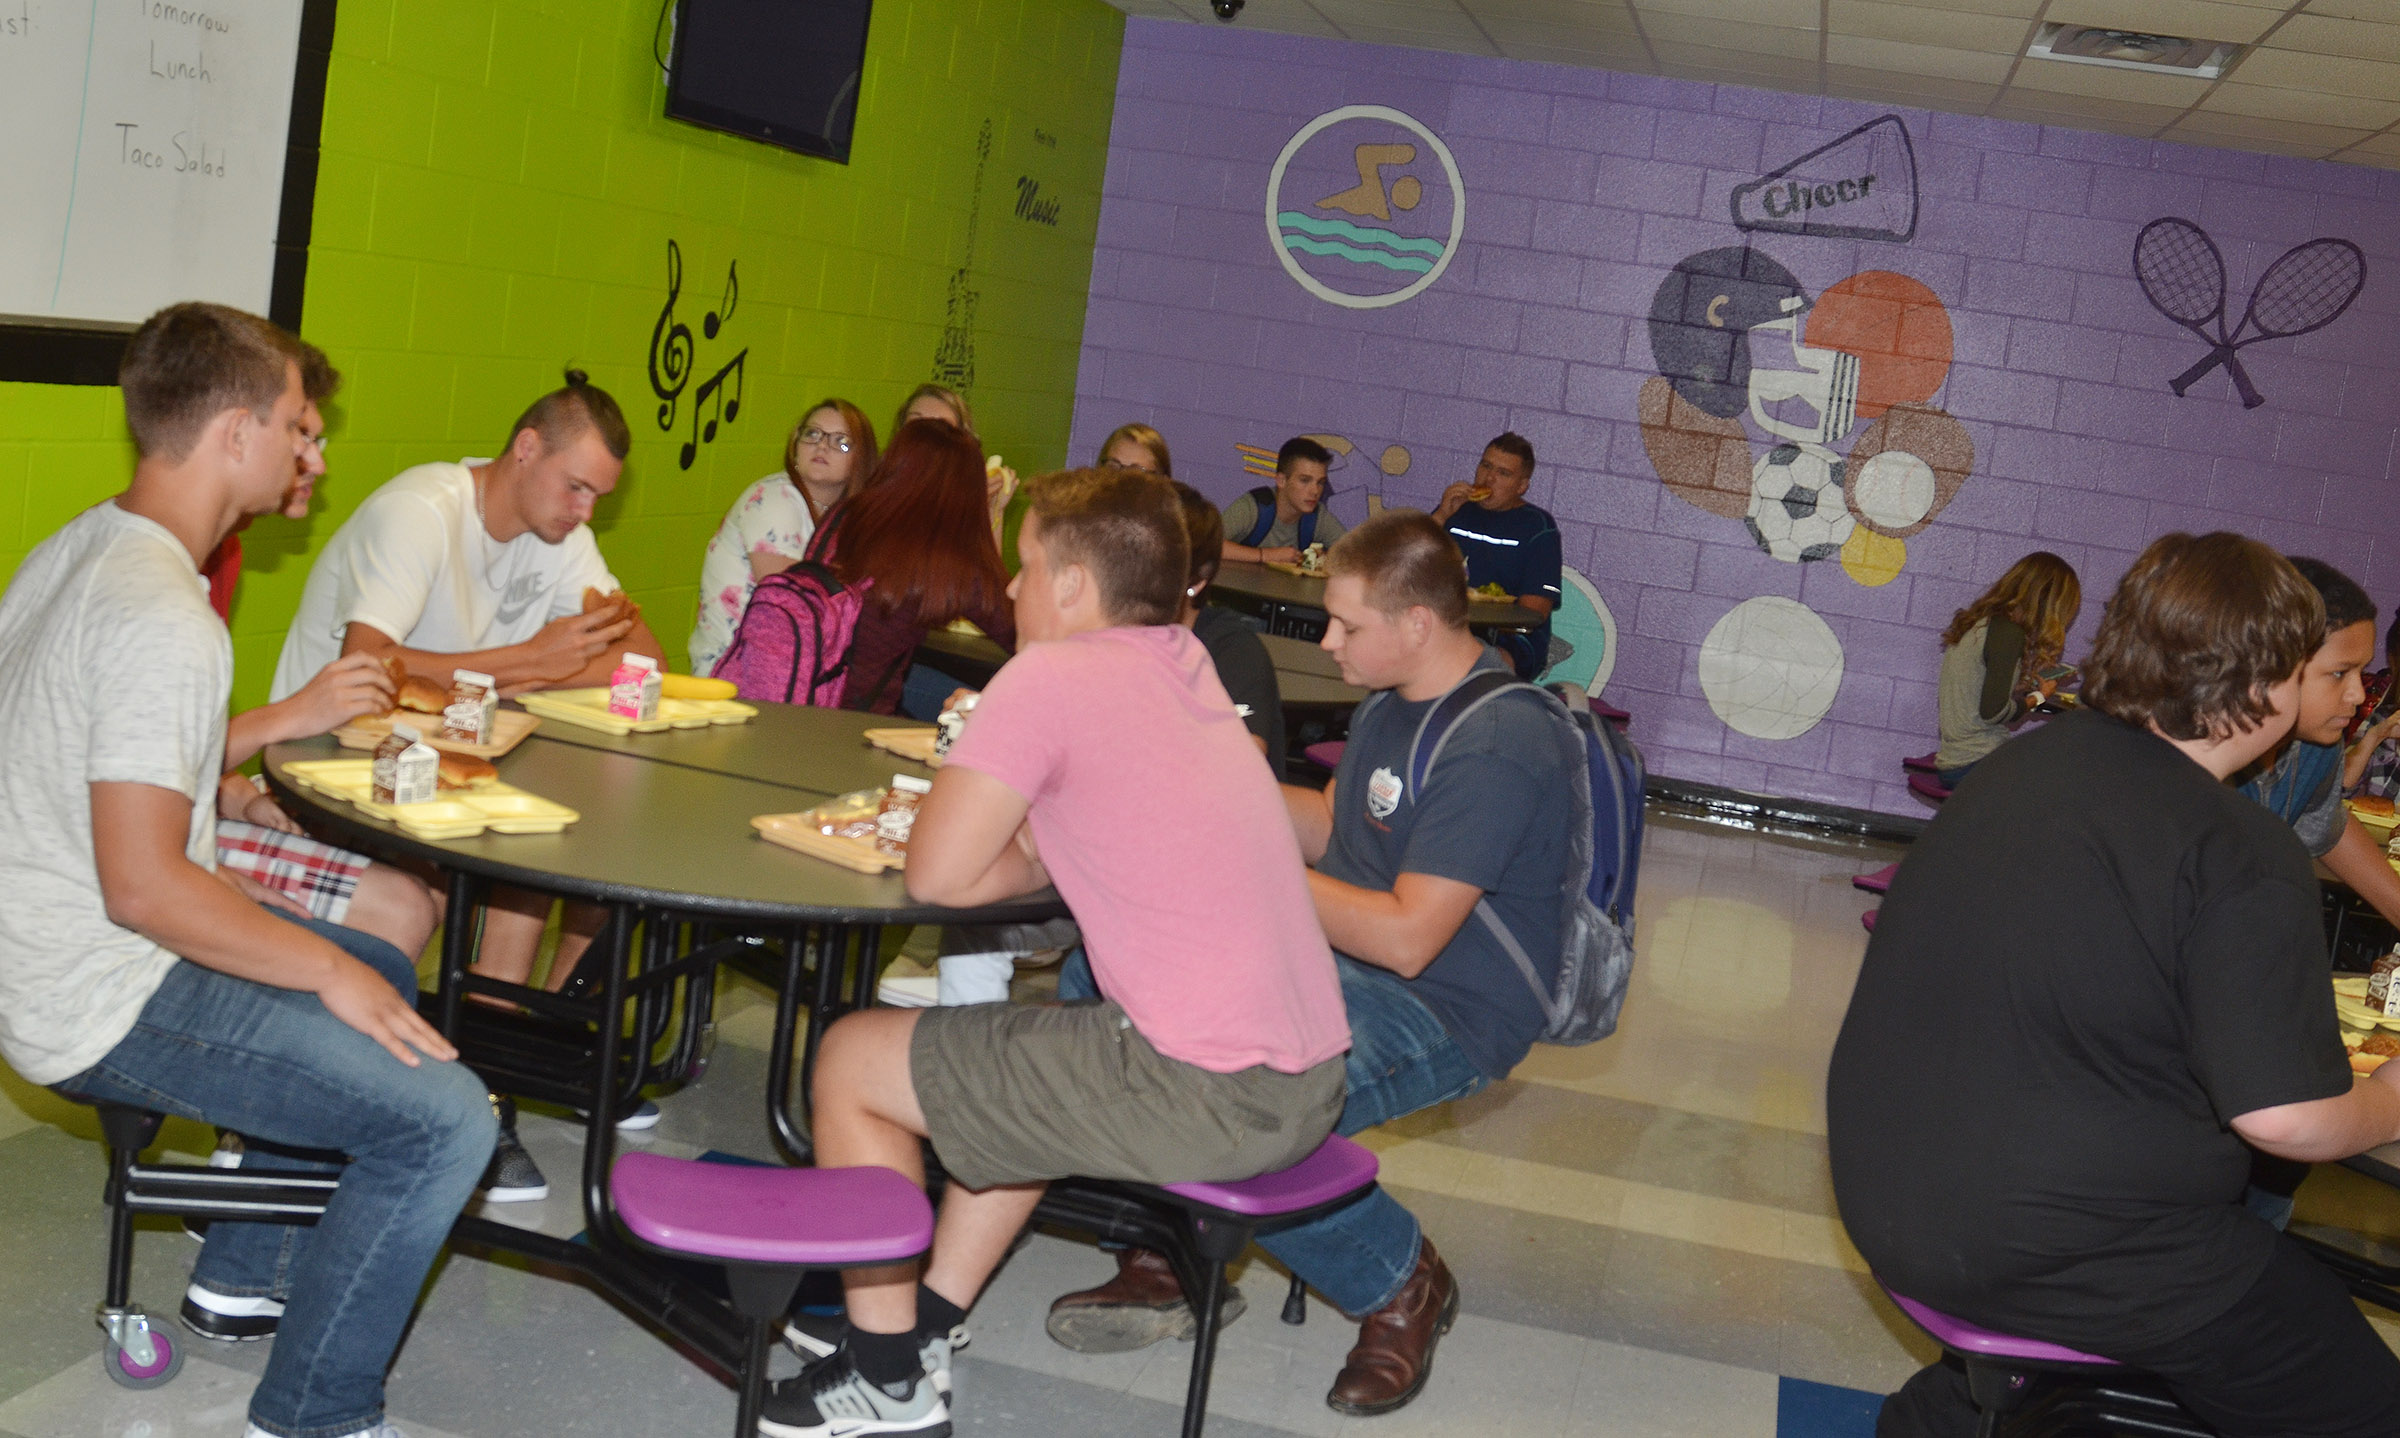 CHS students eat lunch together.